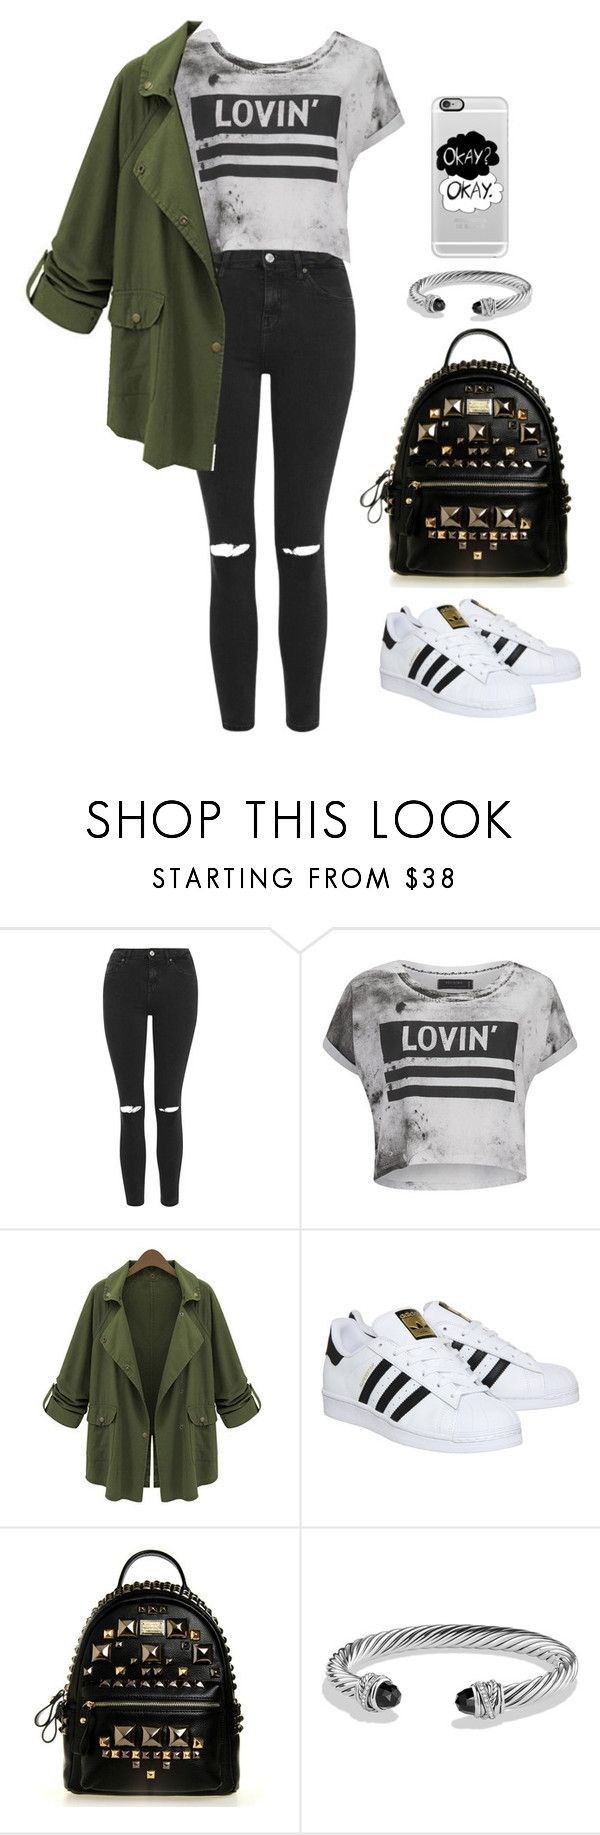 """Casual Outfit For School"" by emmygarcia77 on Polyvore featuring Topshop, Religion Clothing, Chicnova Fashion, adidas, David Yurman, Casetify, women&#…"